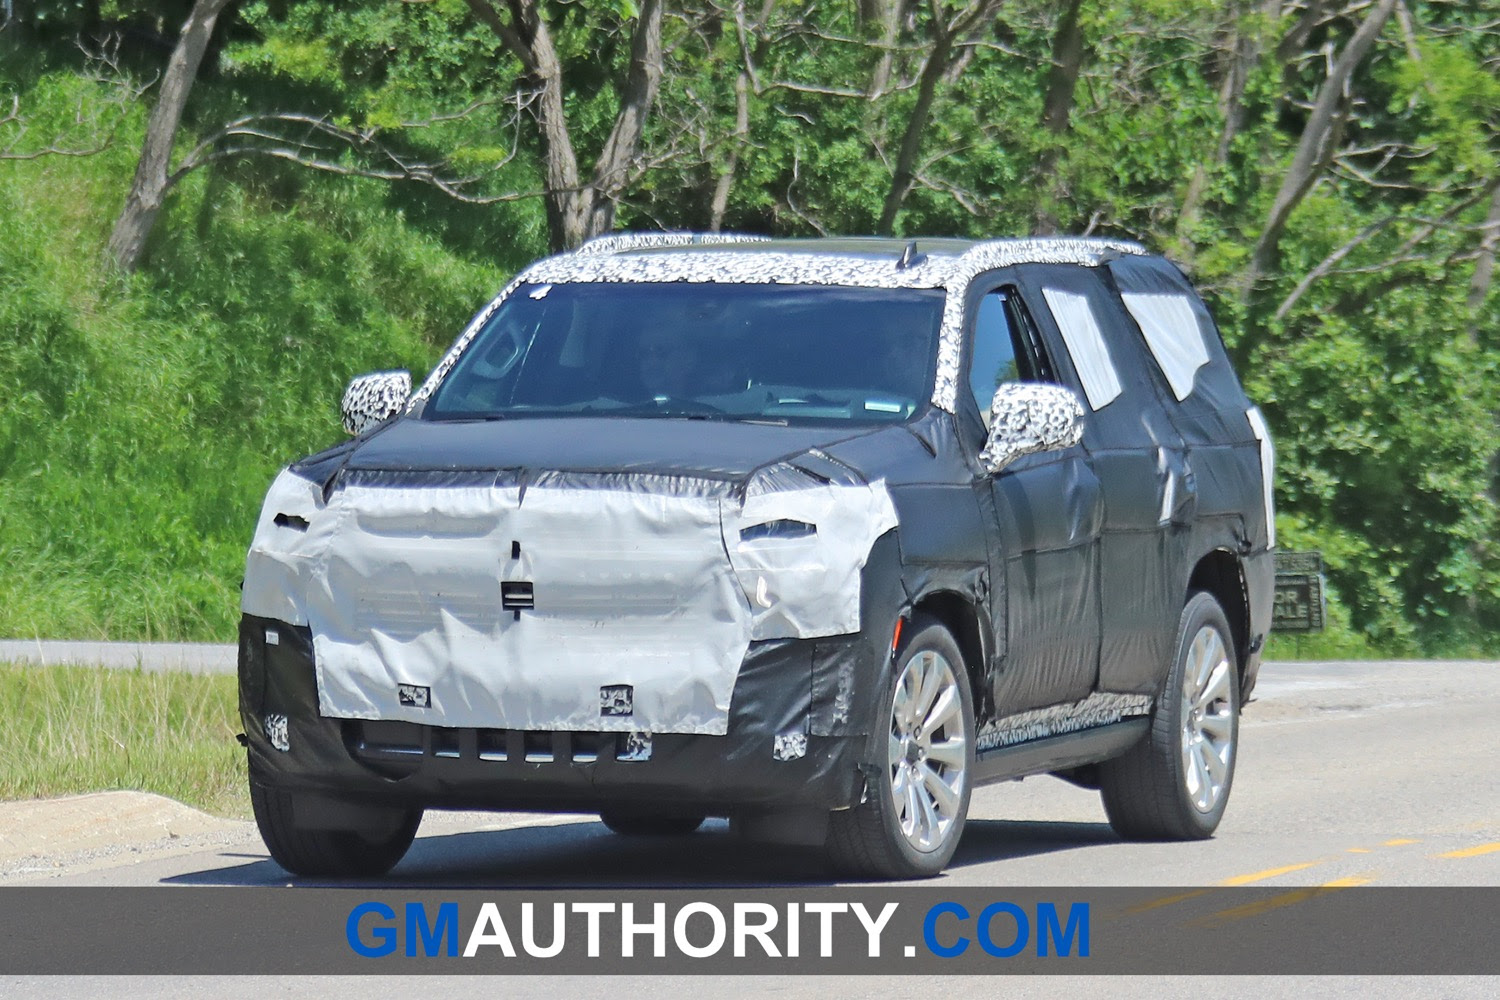 nextgen 2021 gm suvs to launch first quarter of 2020  gm